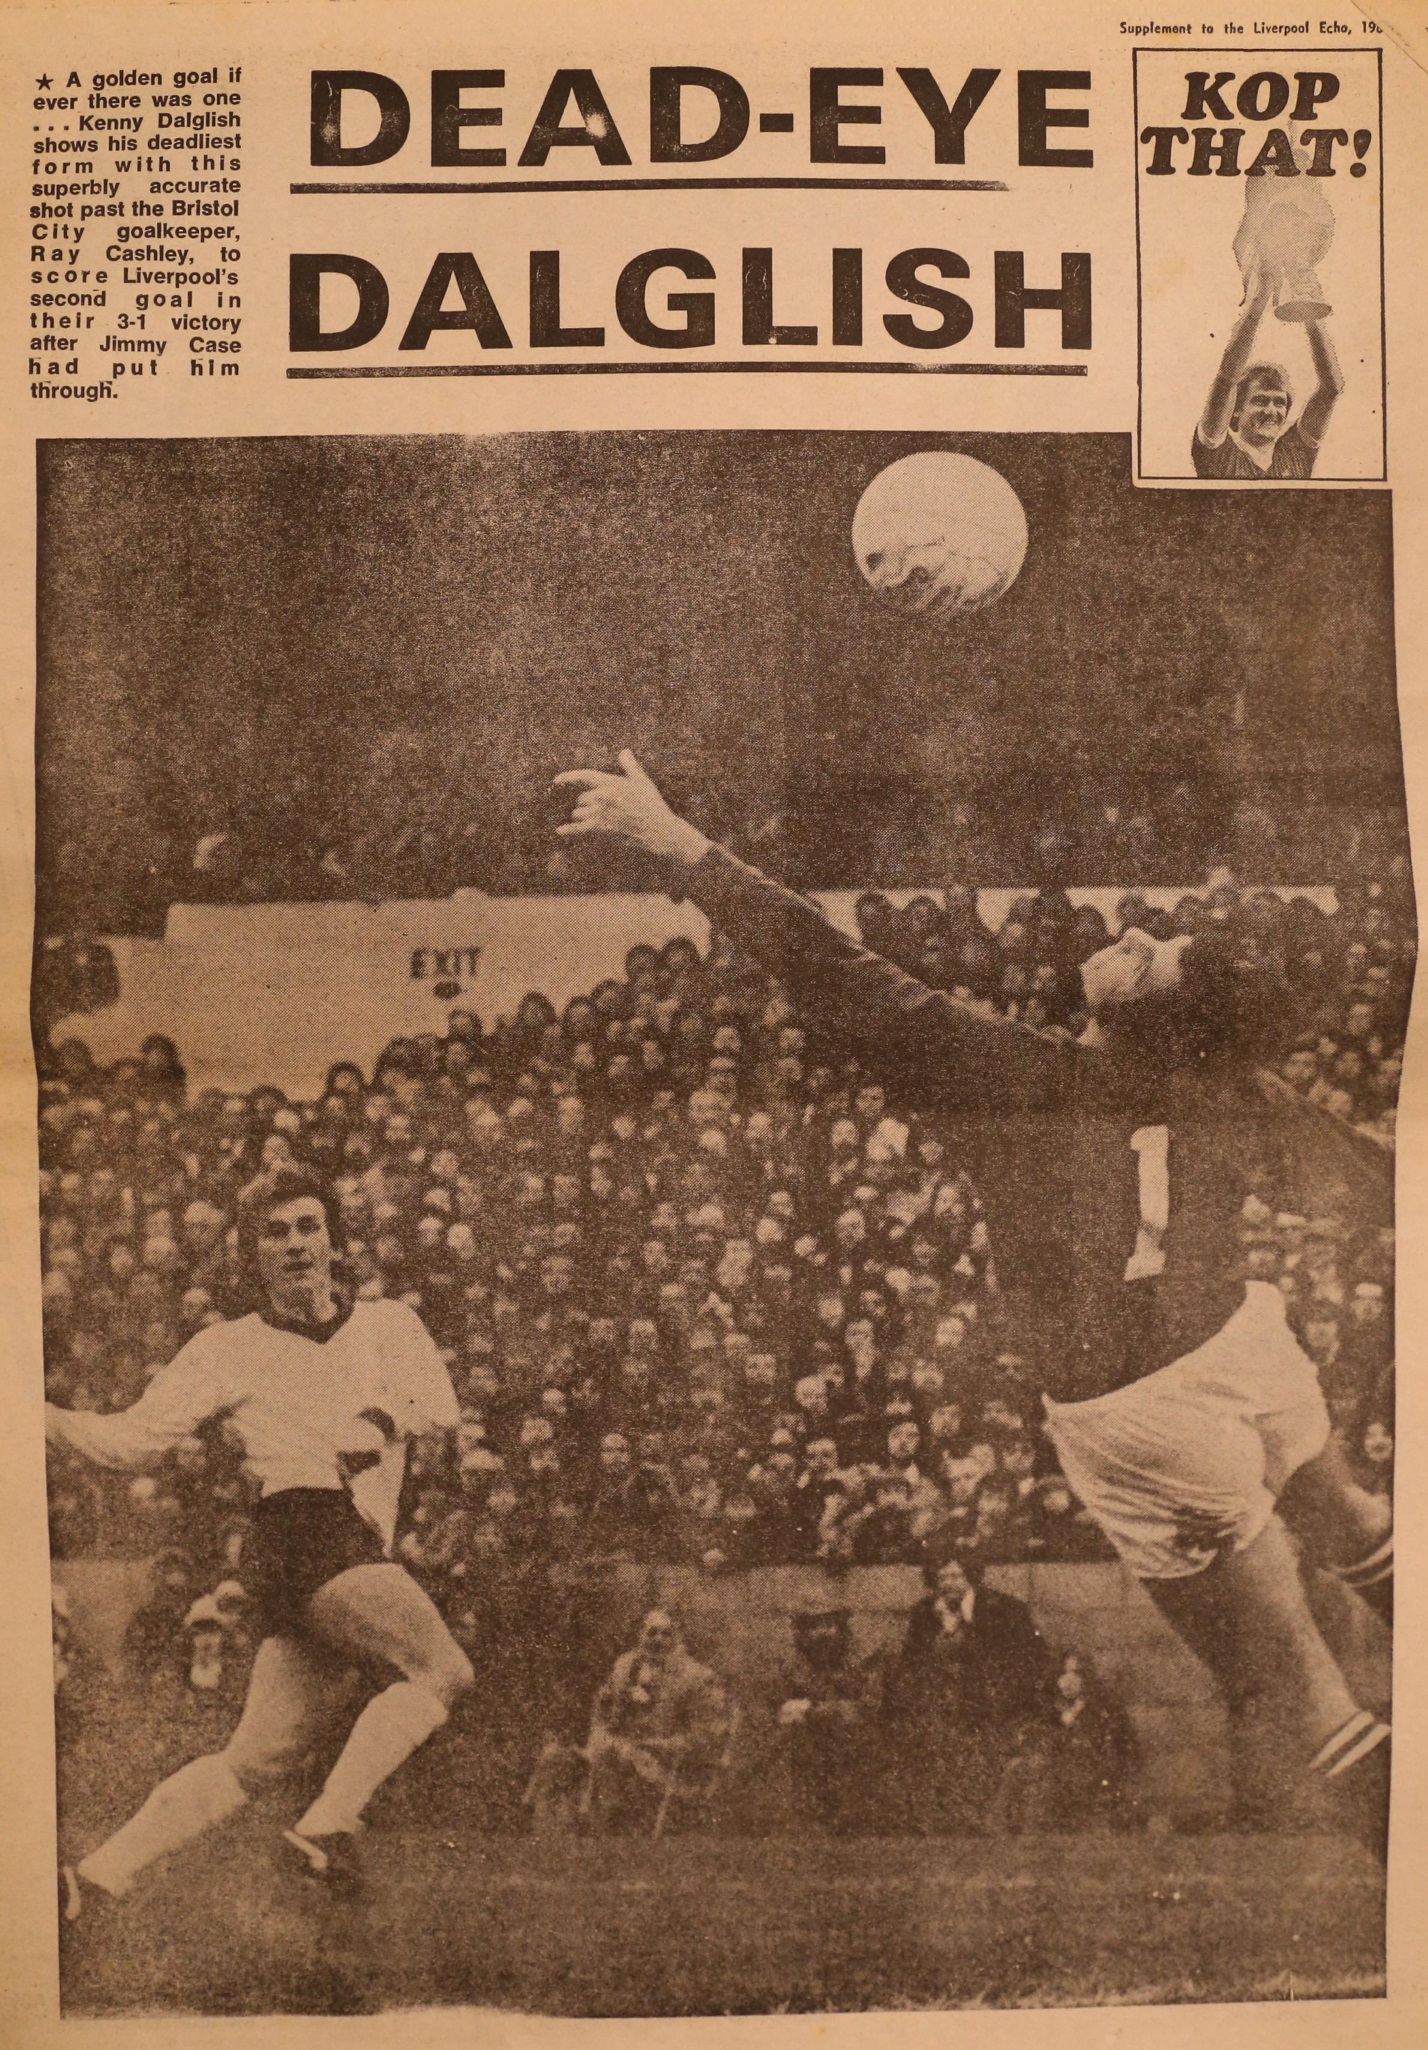 Dead Eye Dalglish - 15 March 1980